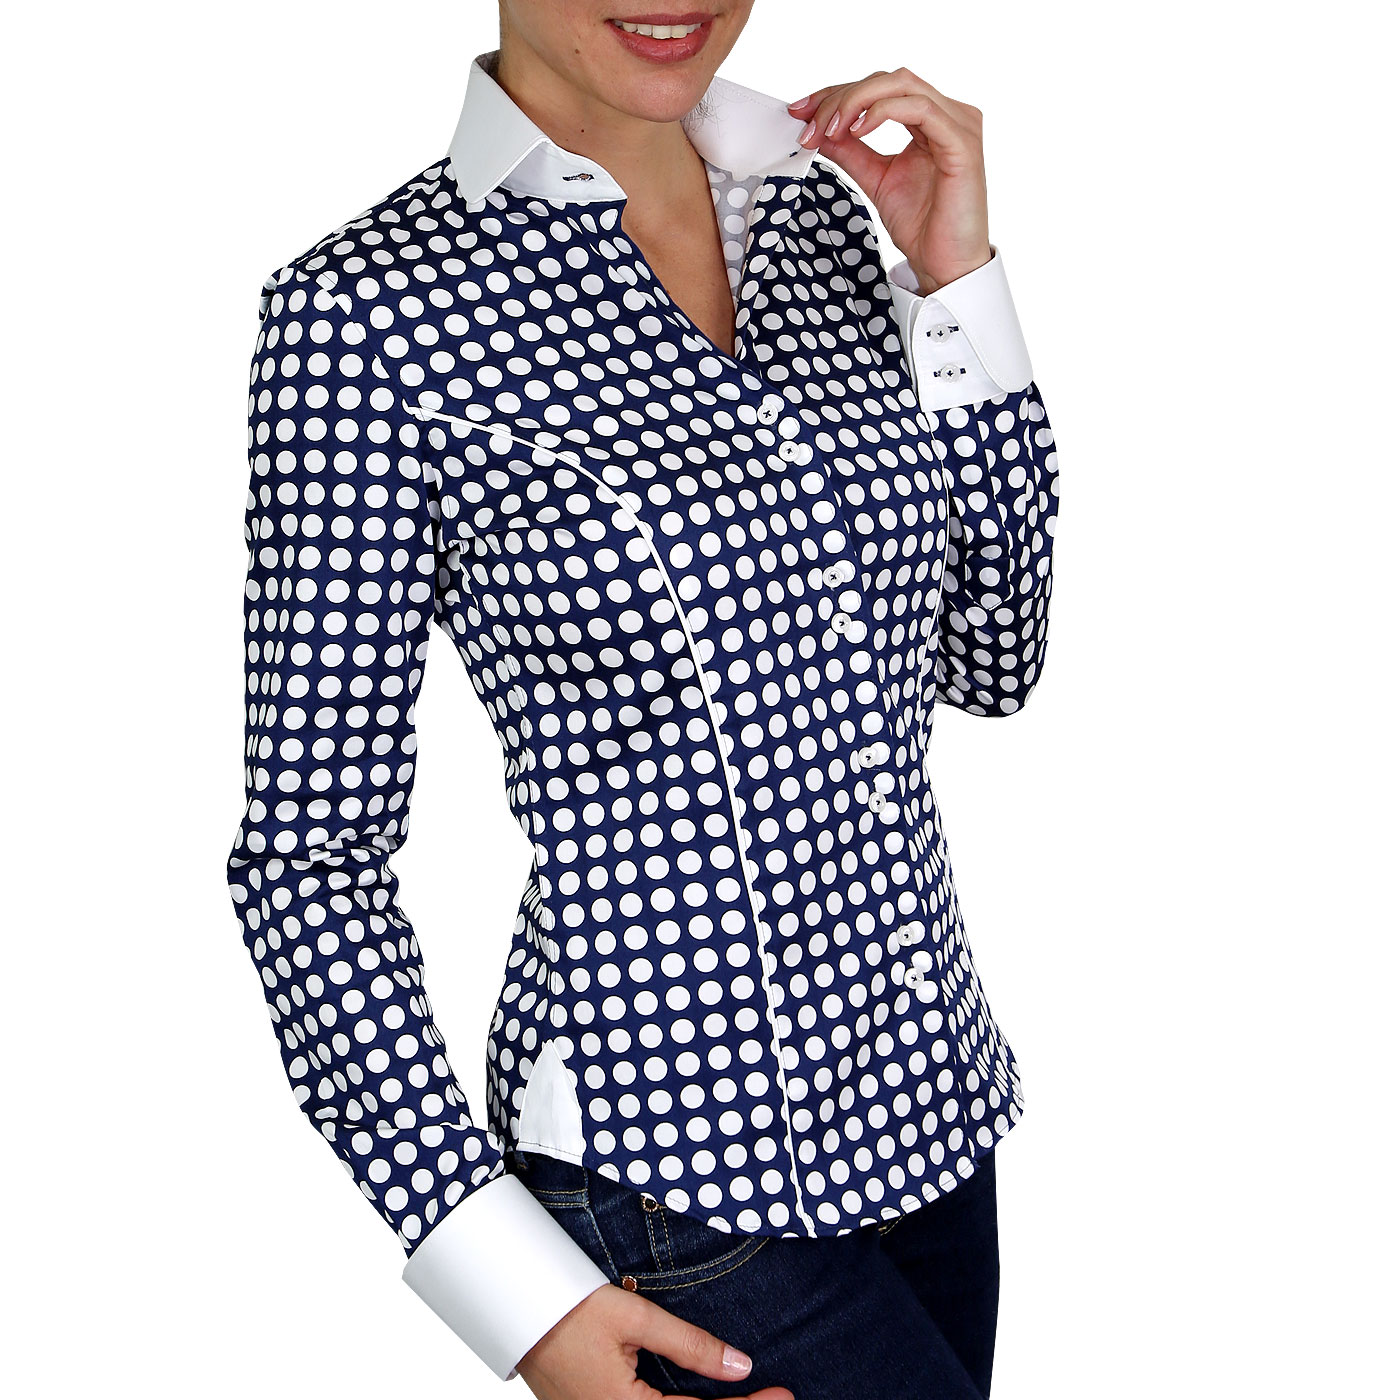 Chemise Femme La Collection Exclusive de chemiseweb.com